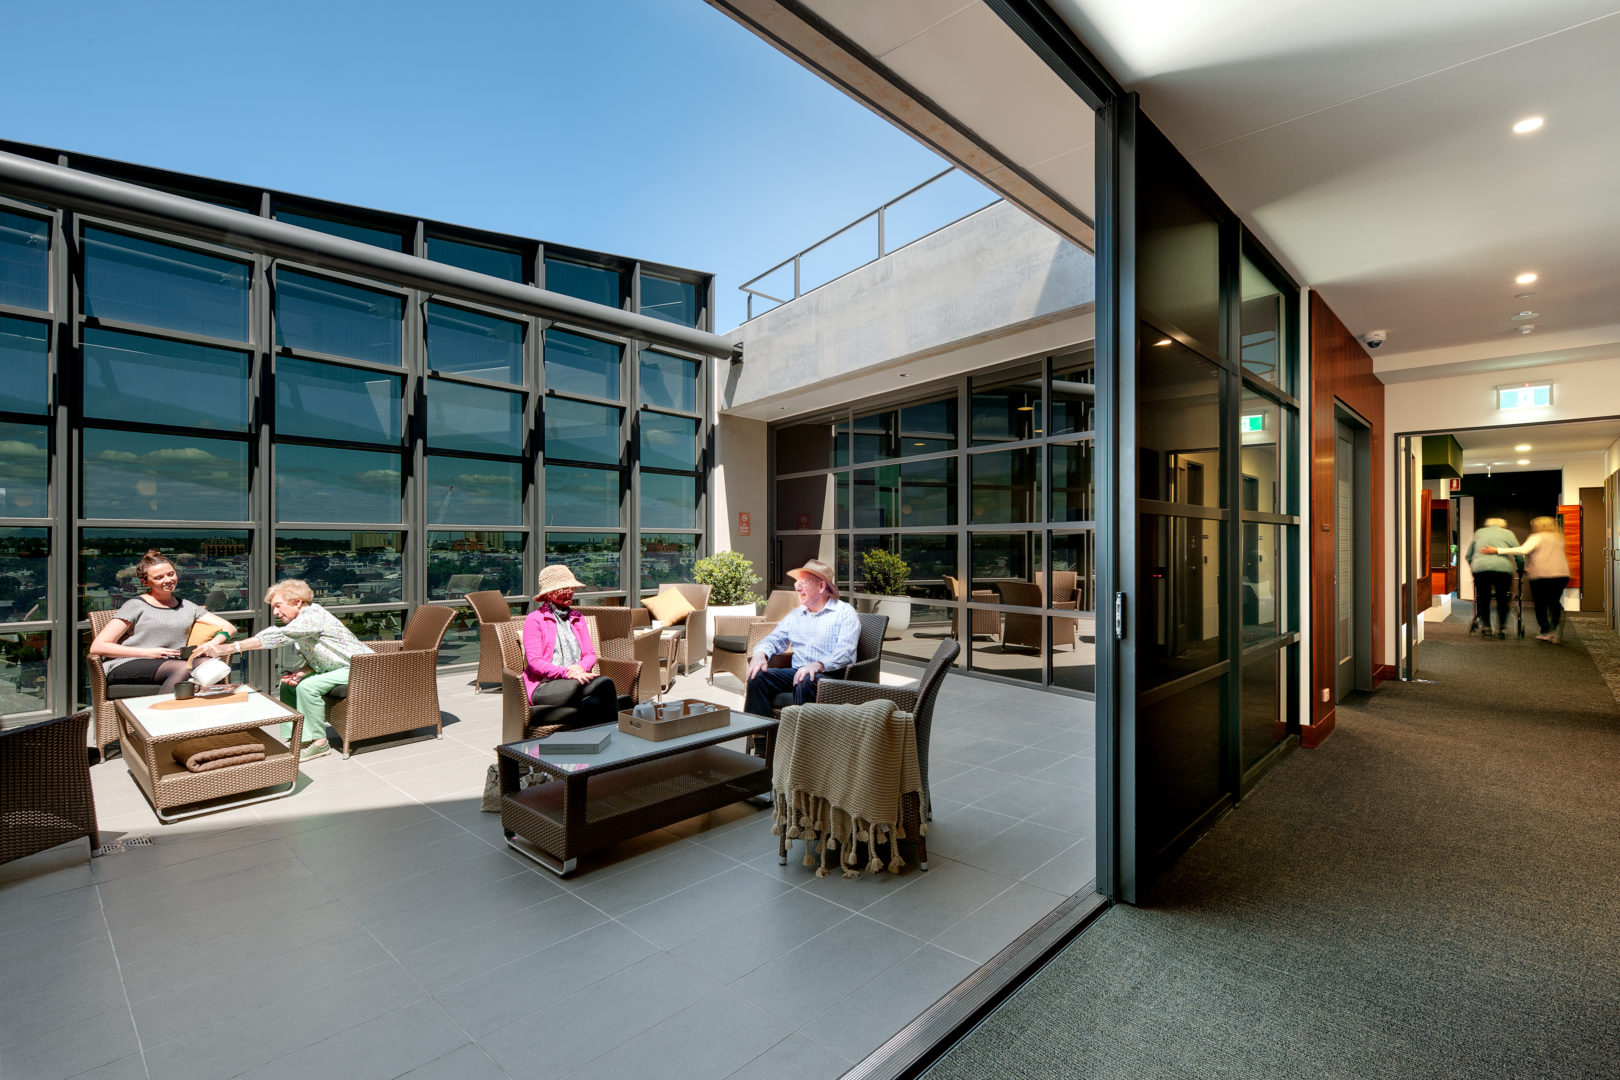 Rathdowne Place Aged Care